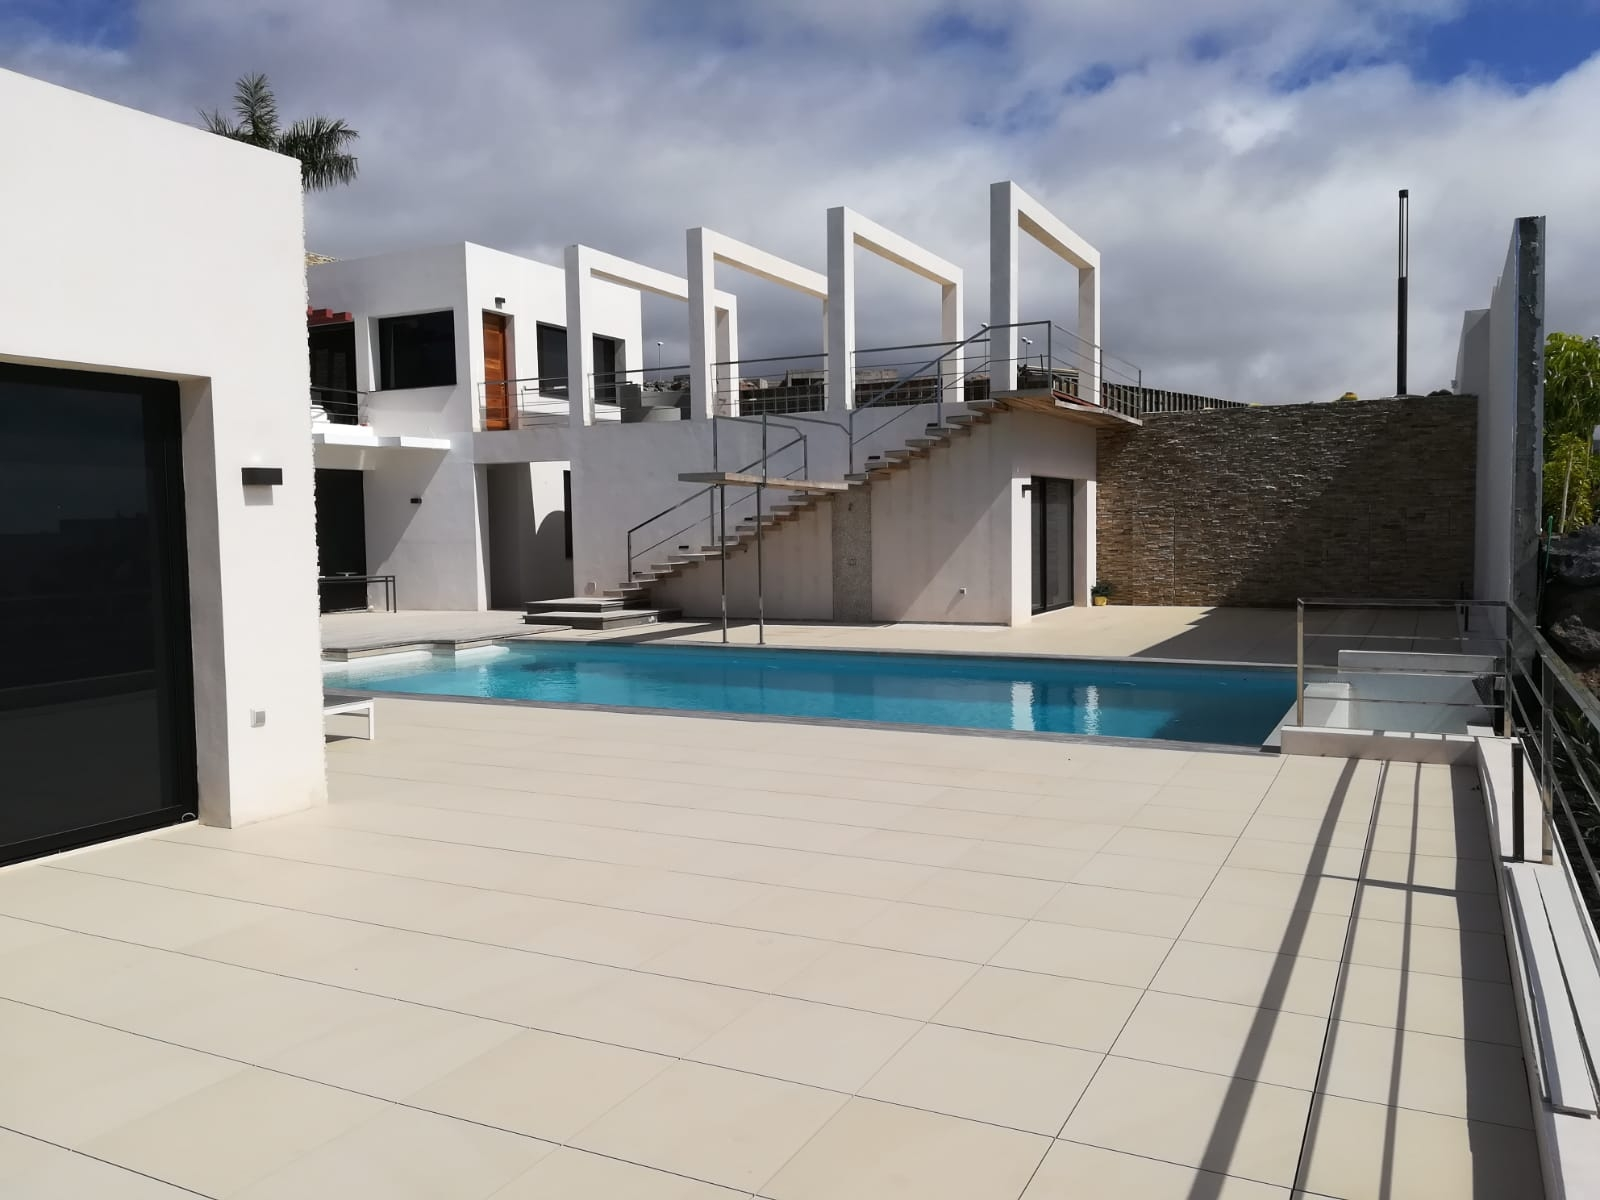 Properties for Sale in Tenerife, Canary Islands, Spain | SylkWayStar Real Estate. Luxury Villa Golf Costa Adeje. Image-24131